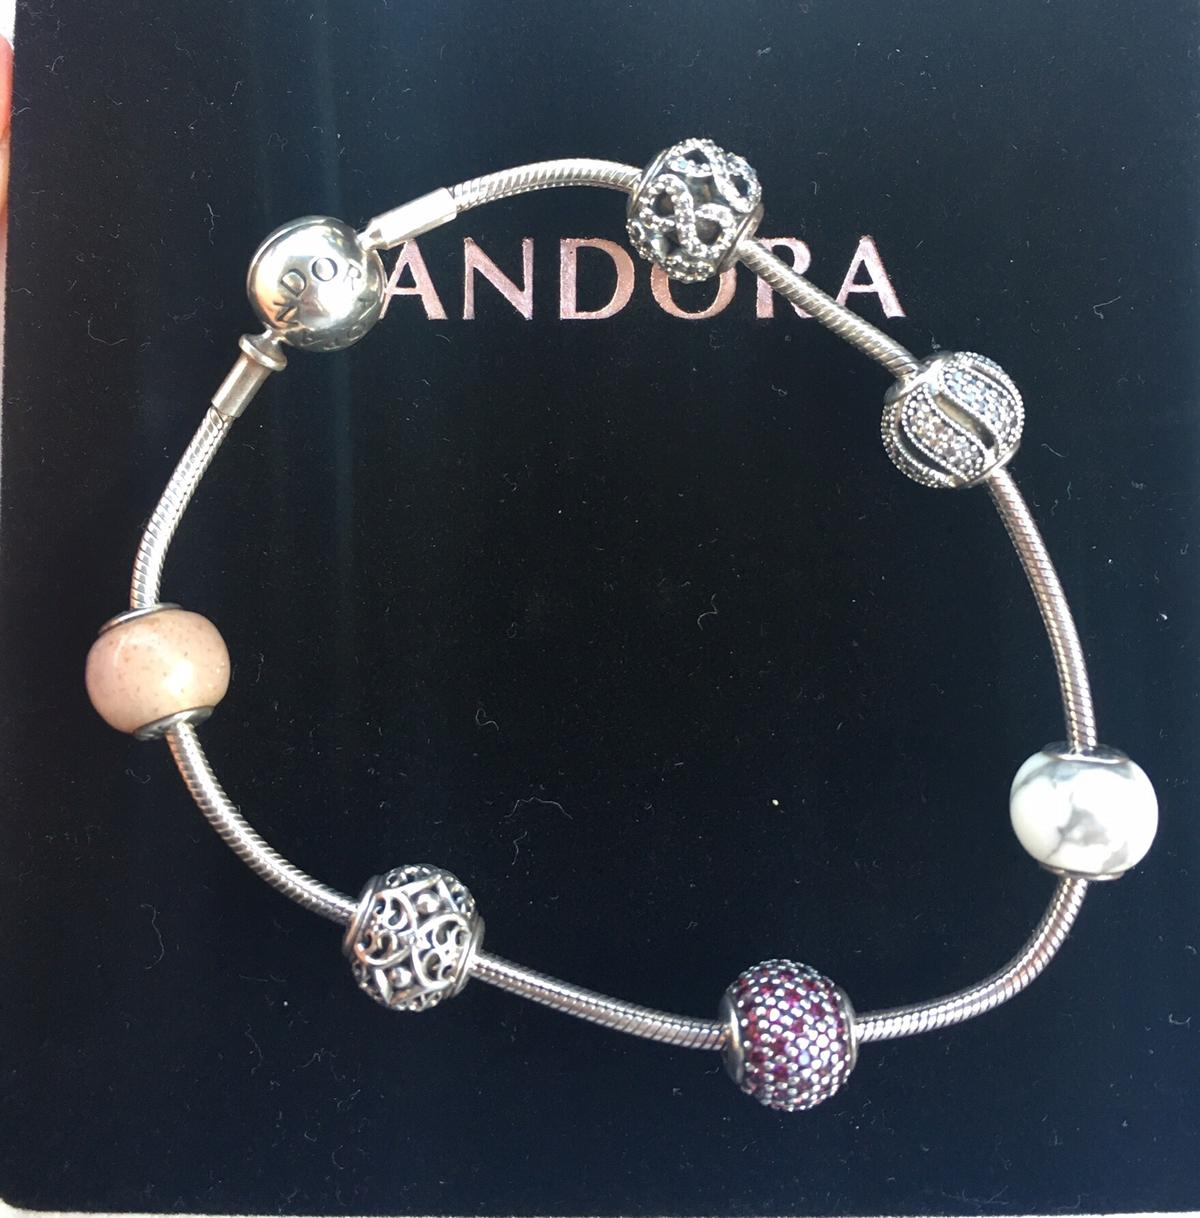 4180c77f8 Genuine Pandora essence charms and bracelet in WS10 Wednesbury for ...